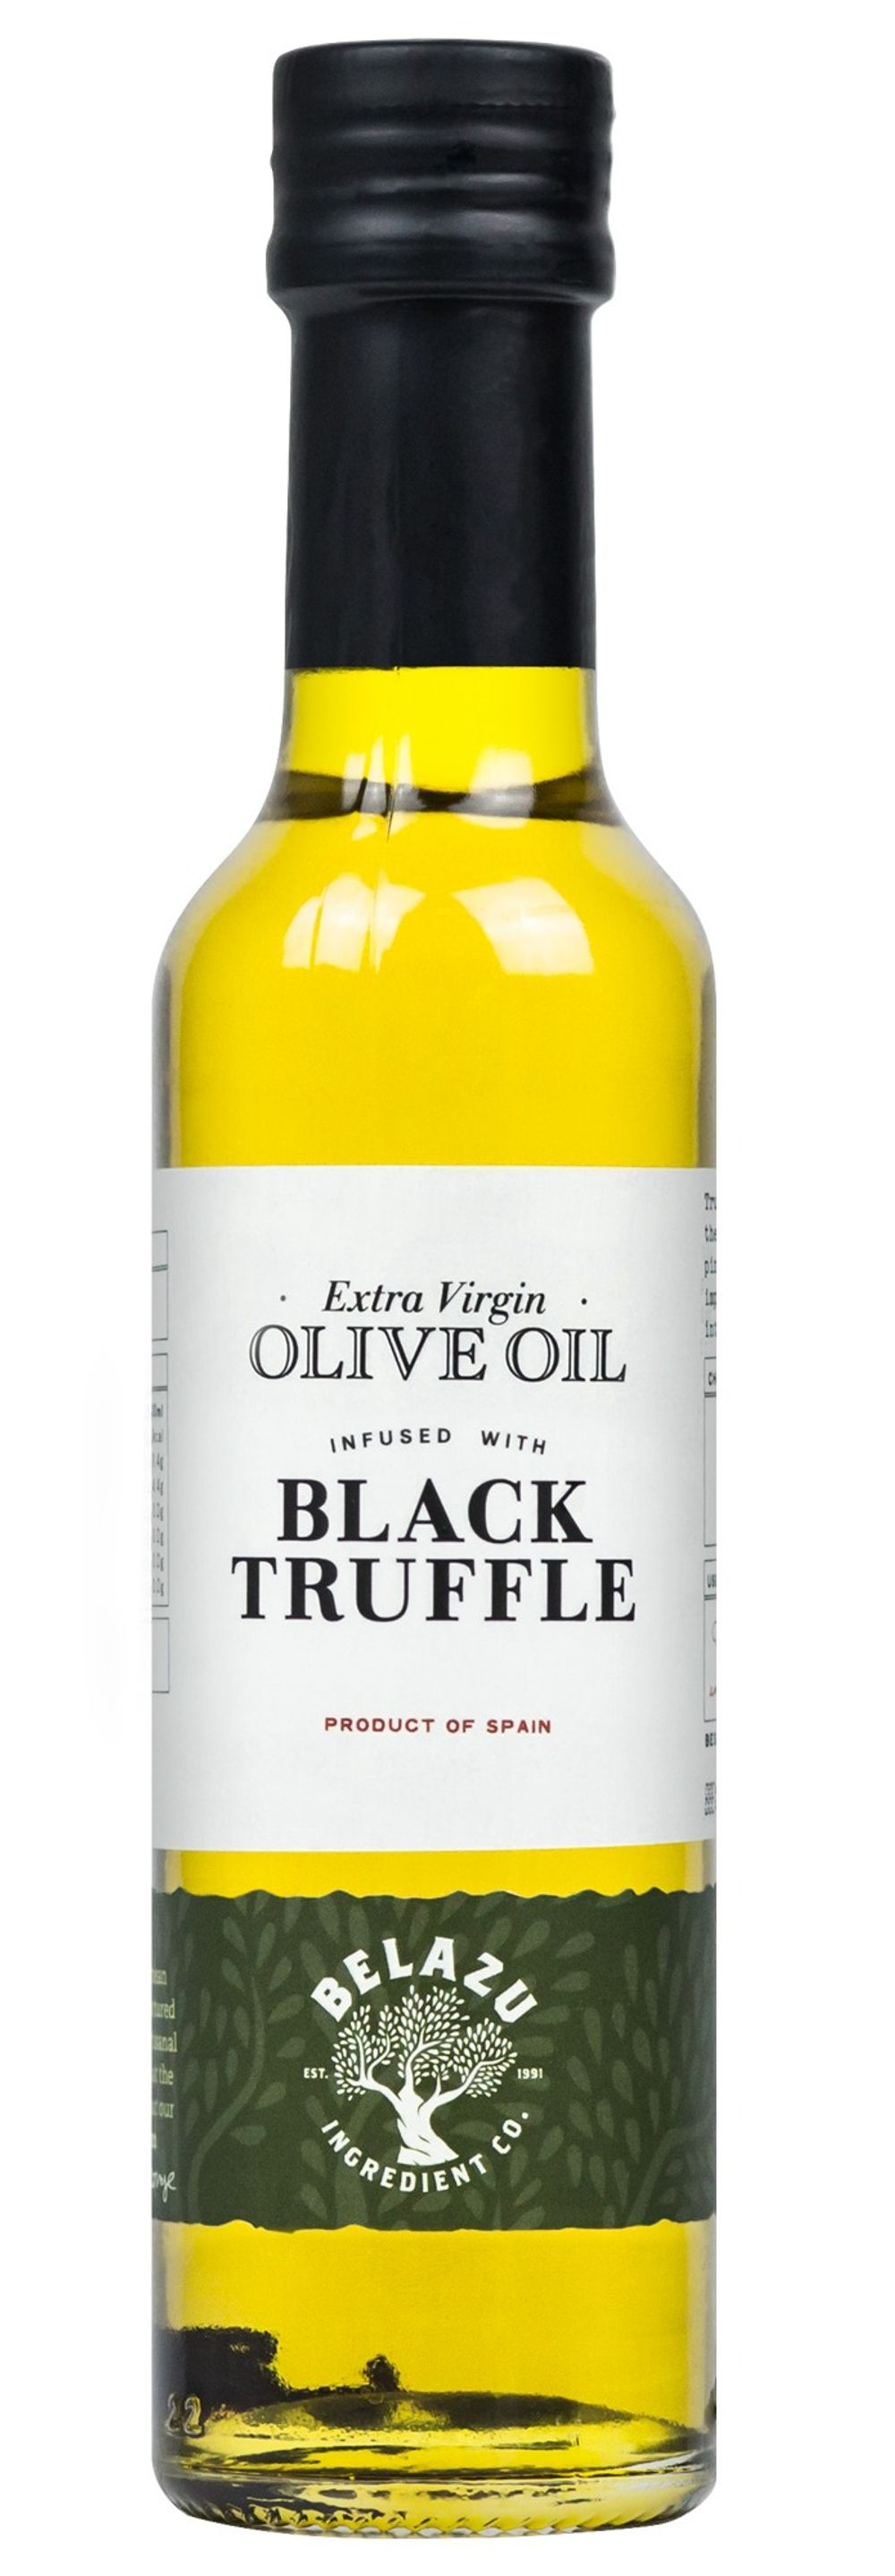 Infused Black Truffle Olive Oil